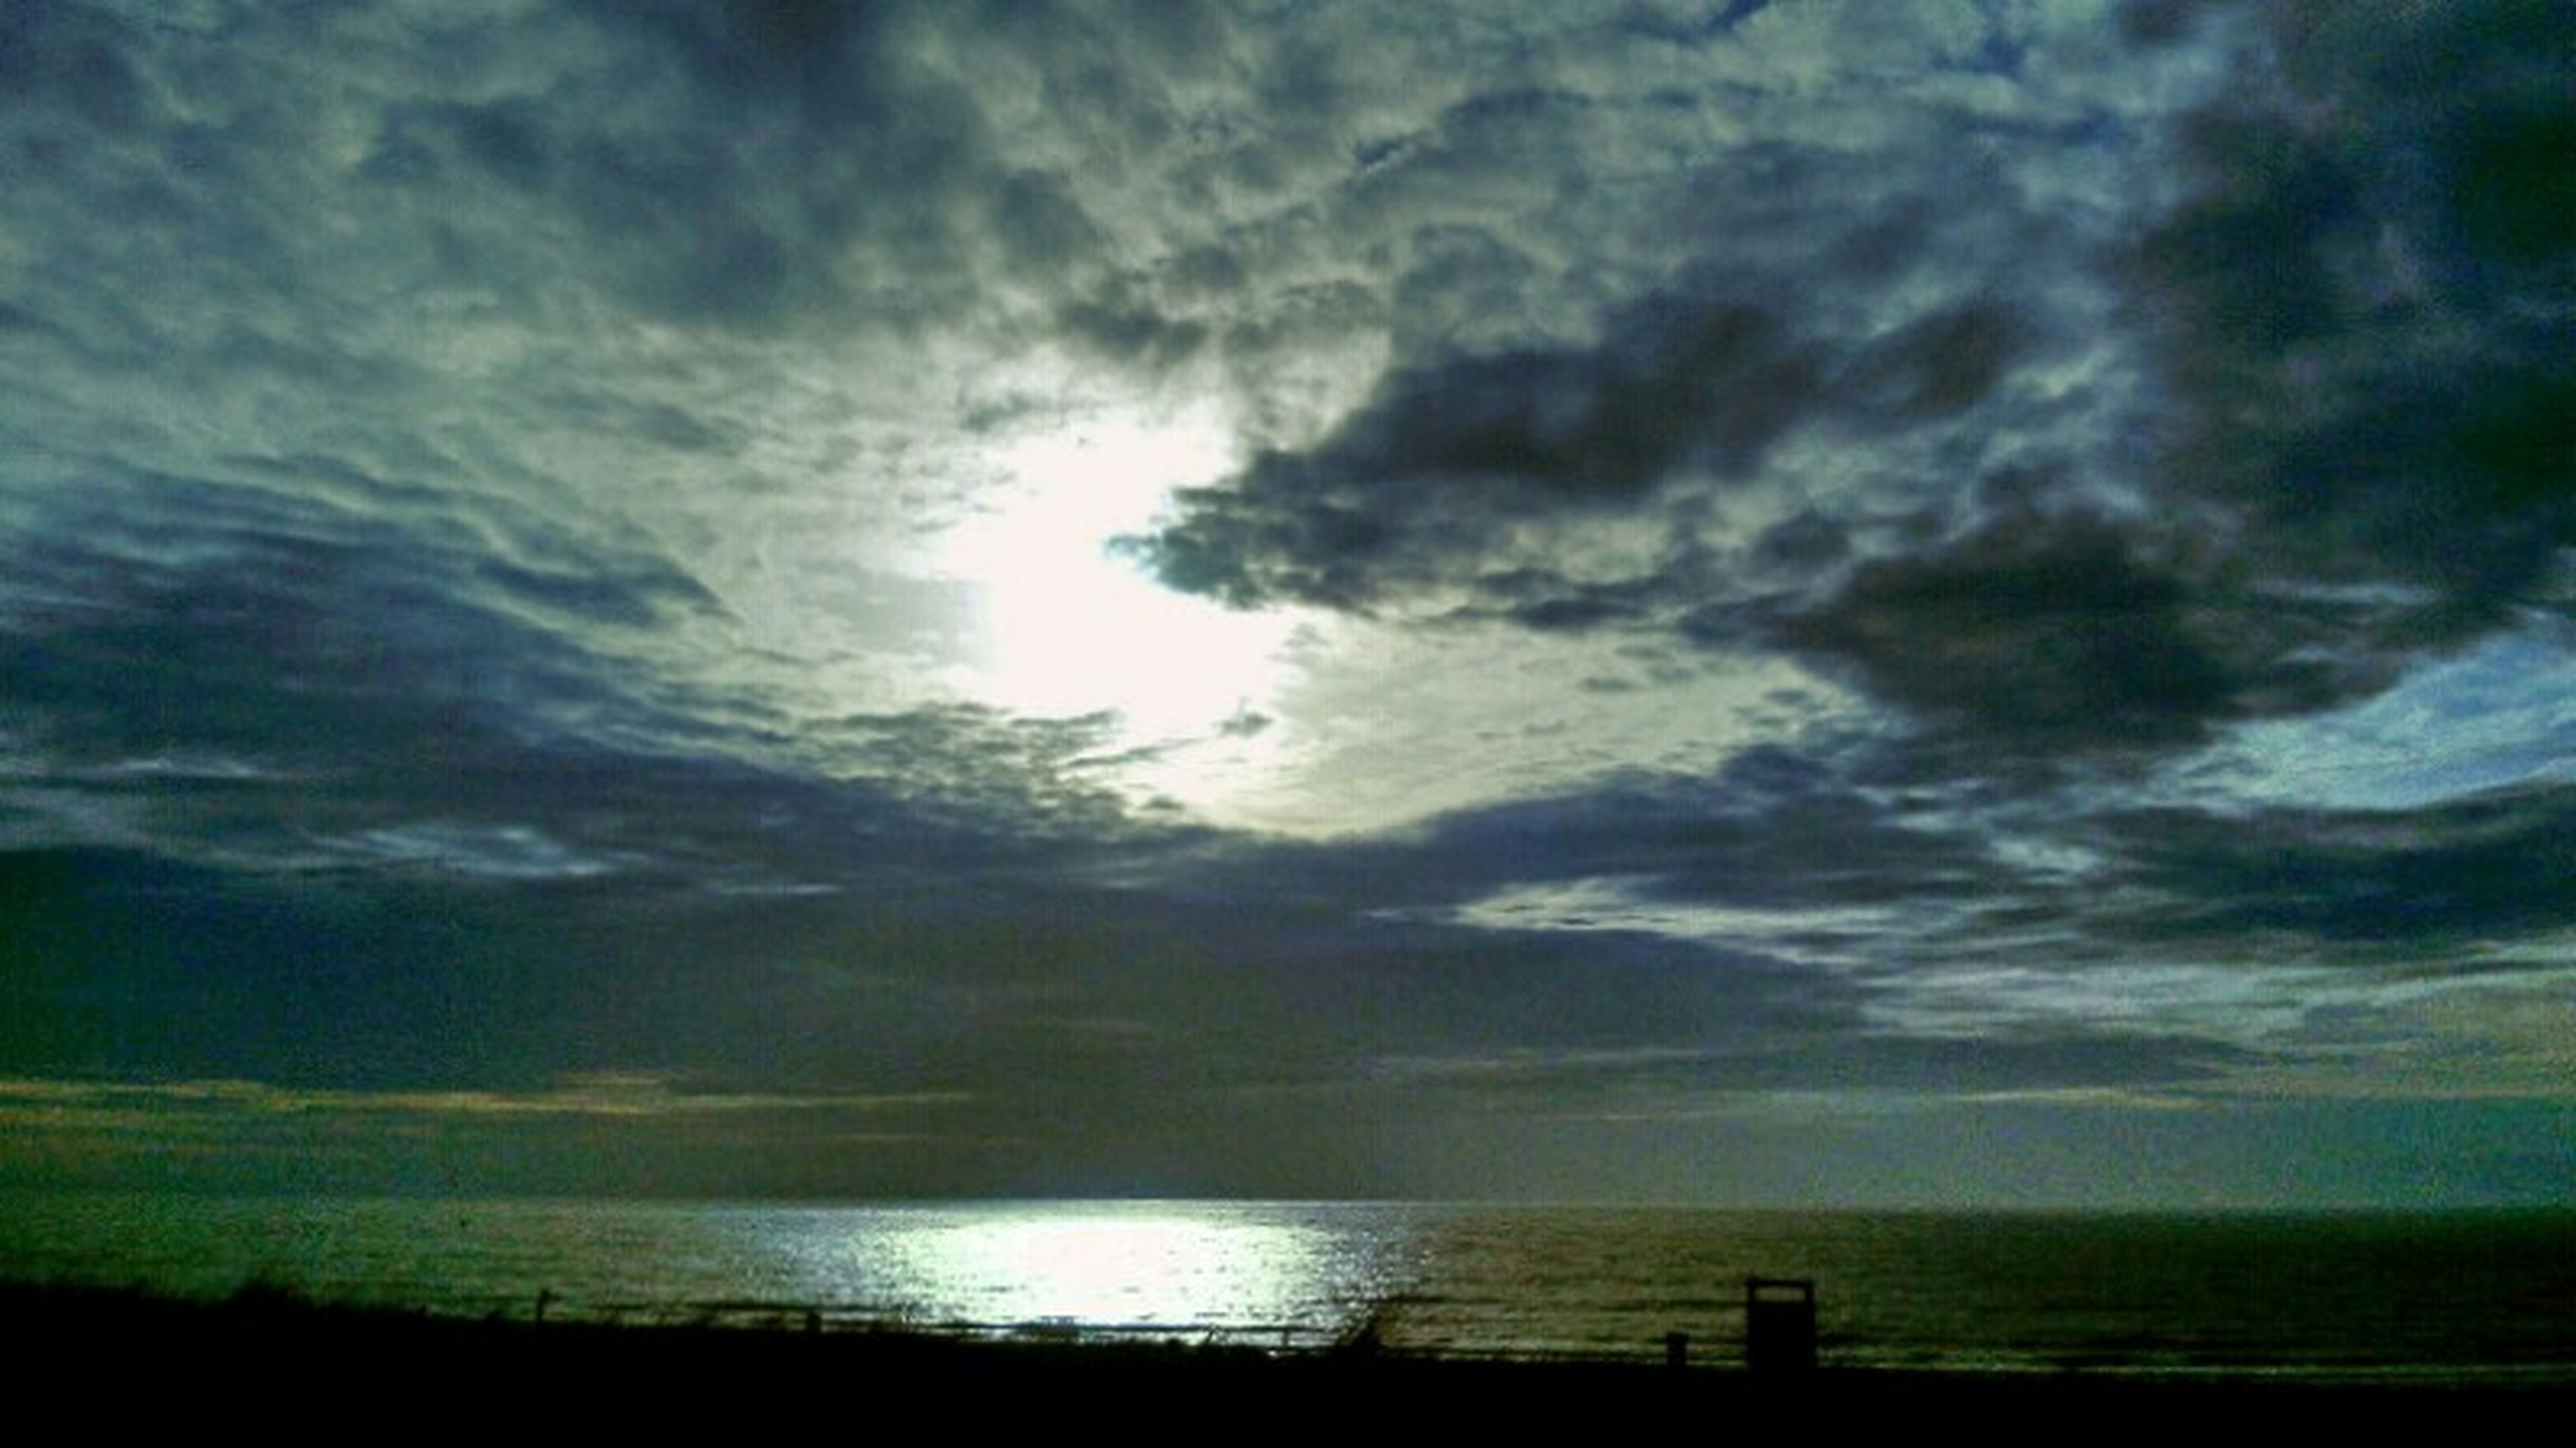 sky, water, sea, horizon over water, cloud - sky, tranquil scene, scenics, tranquility, beauty in nature, silhouette, sunset, sun, cloudy, nature, cloud, idyllic, reflection, beach, sunbeam, sunlight